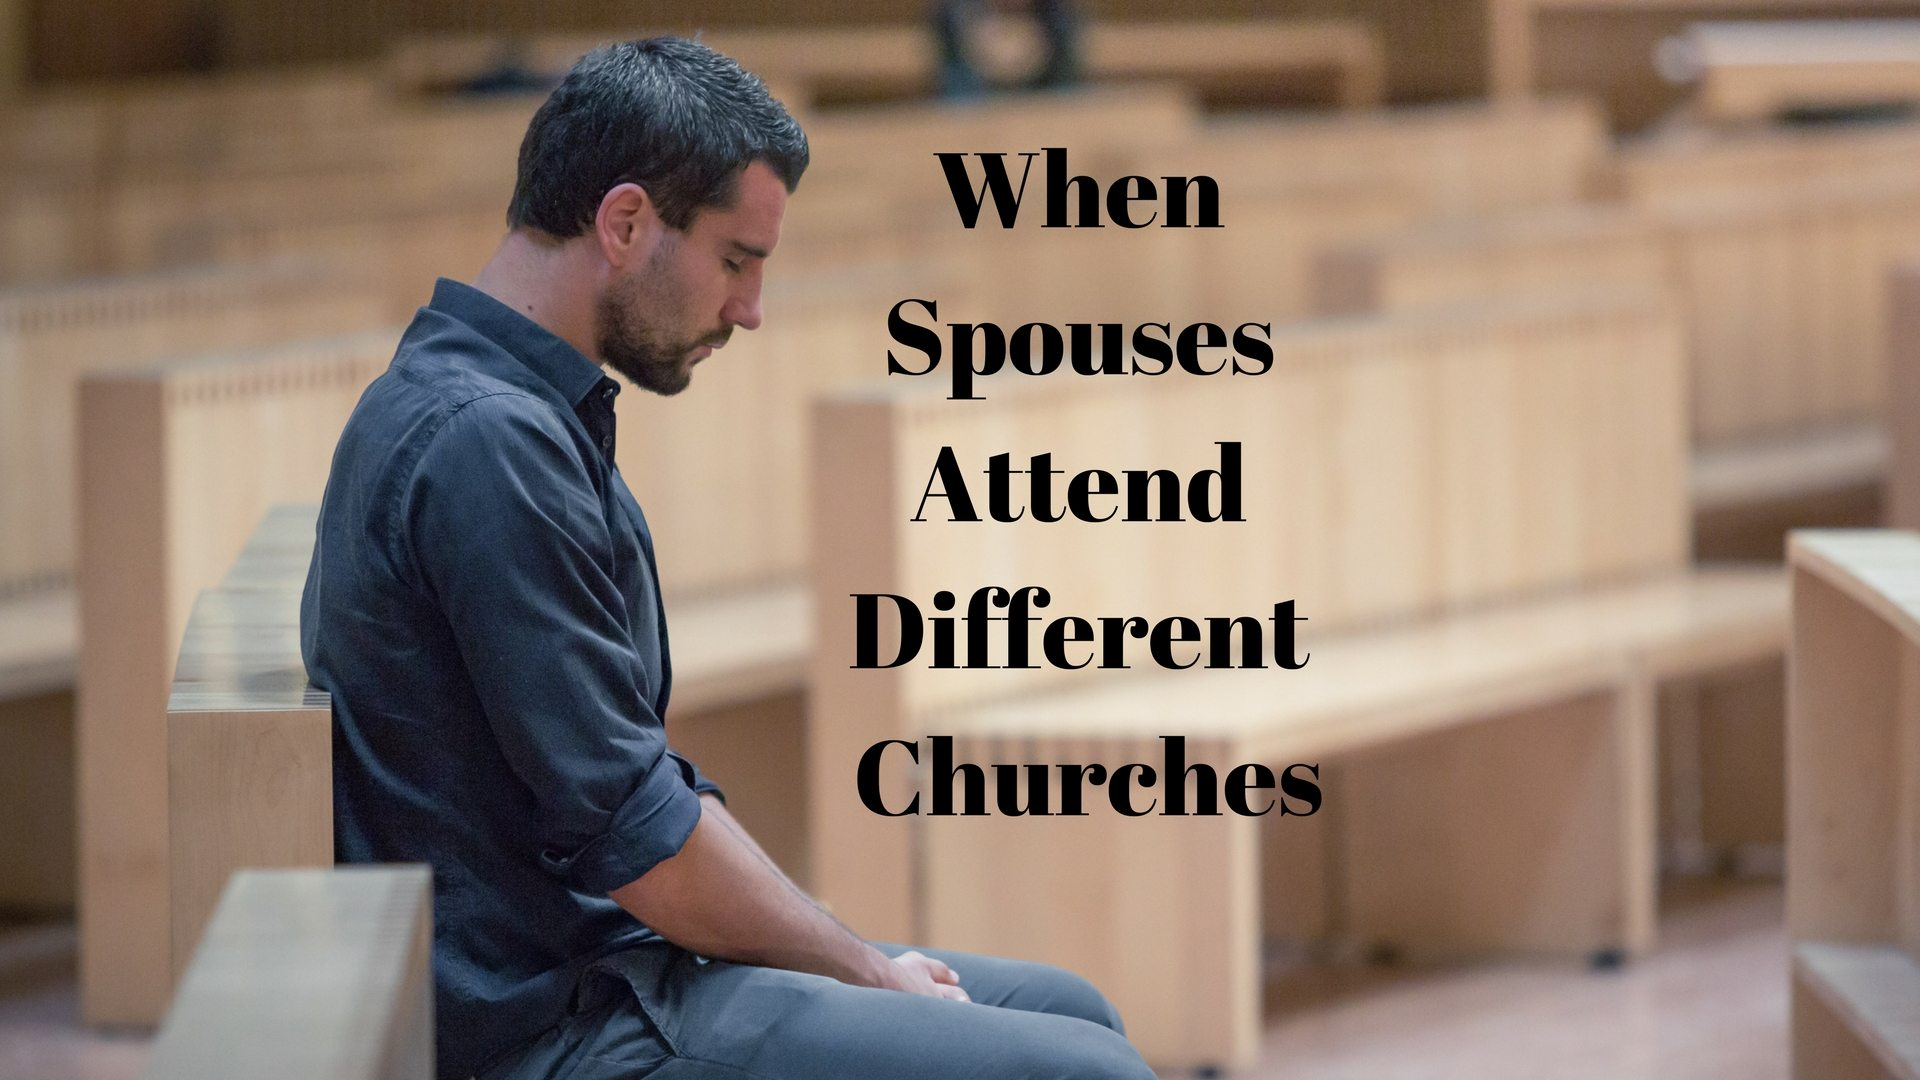 Spouses different churches - Stock Adobe Canva